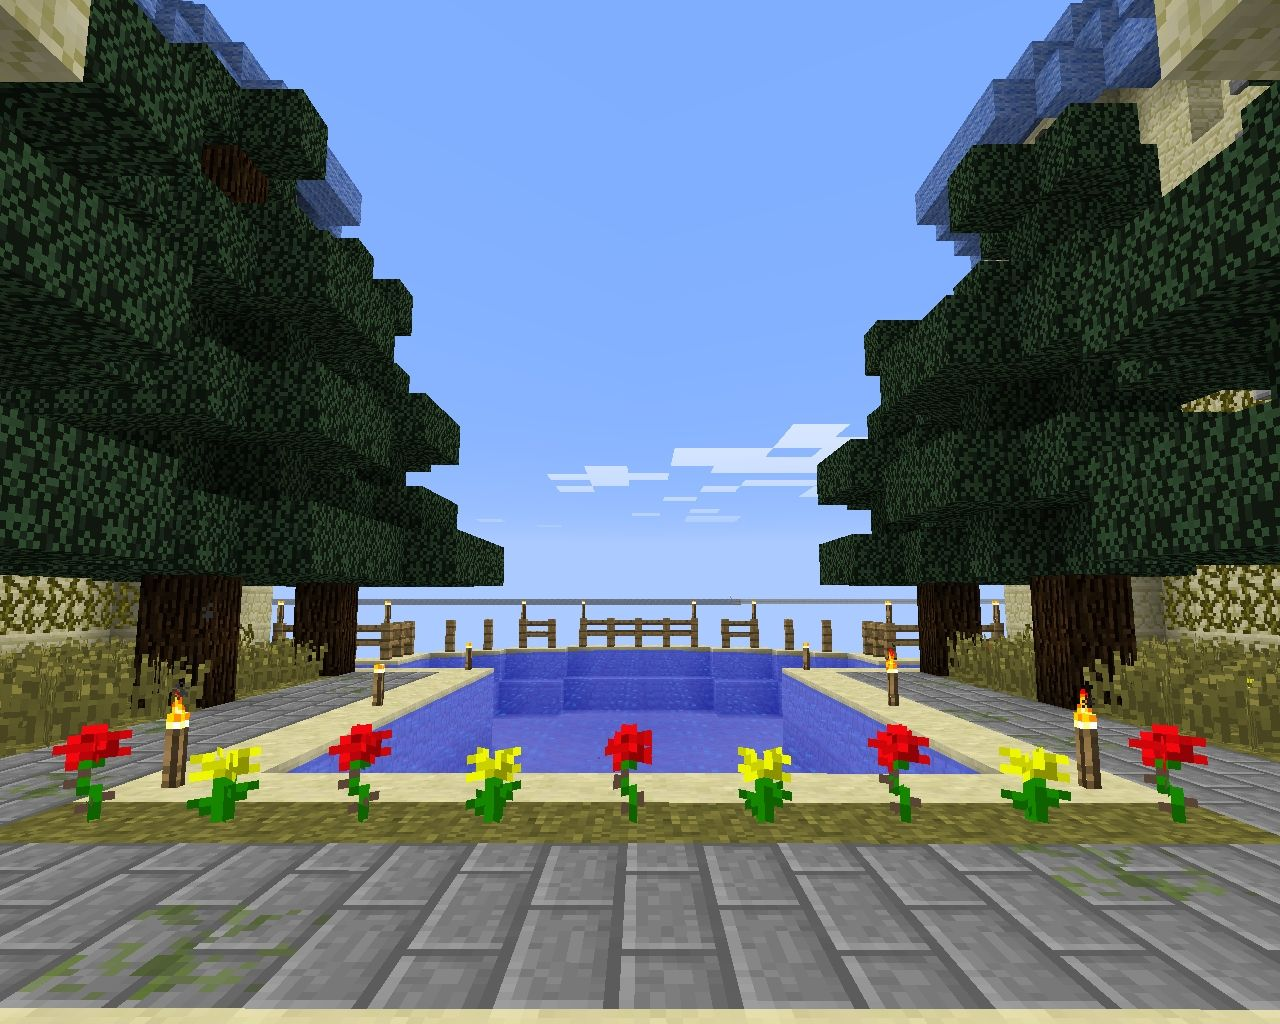 Hilltop castle minecraft project for Castle gardens pool